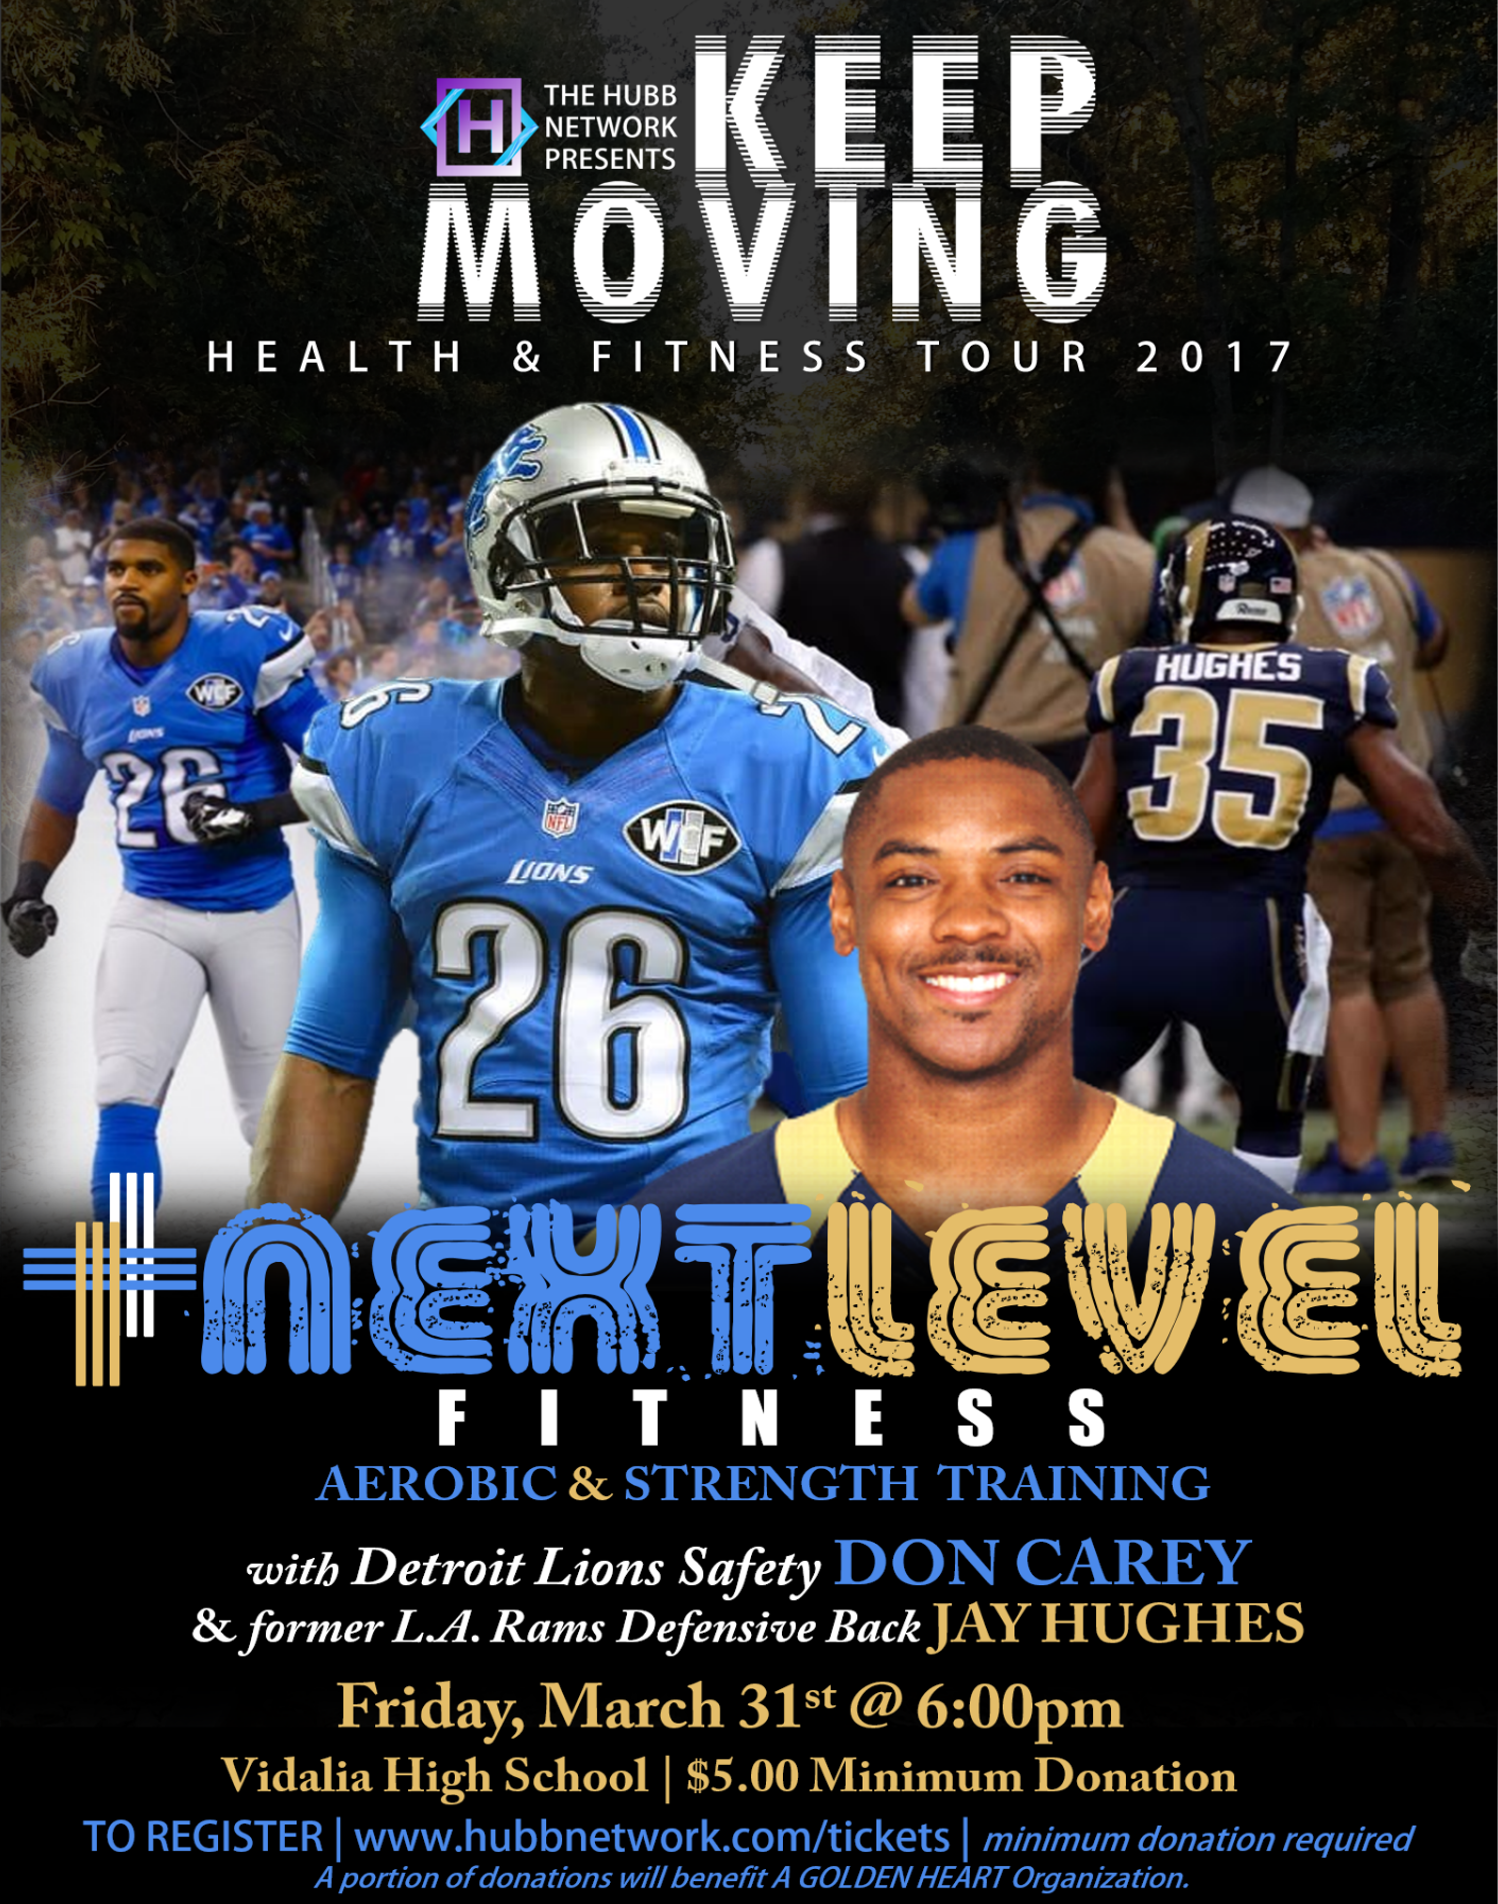 keep moving TOUR. NEXT LEVEL fitness